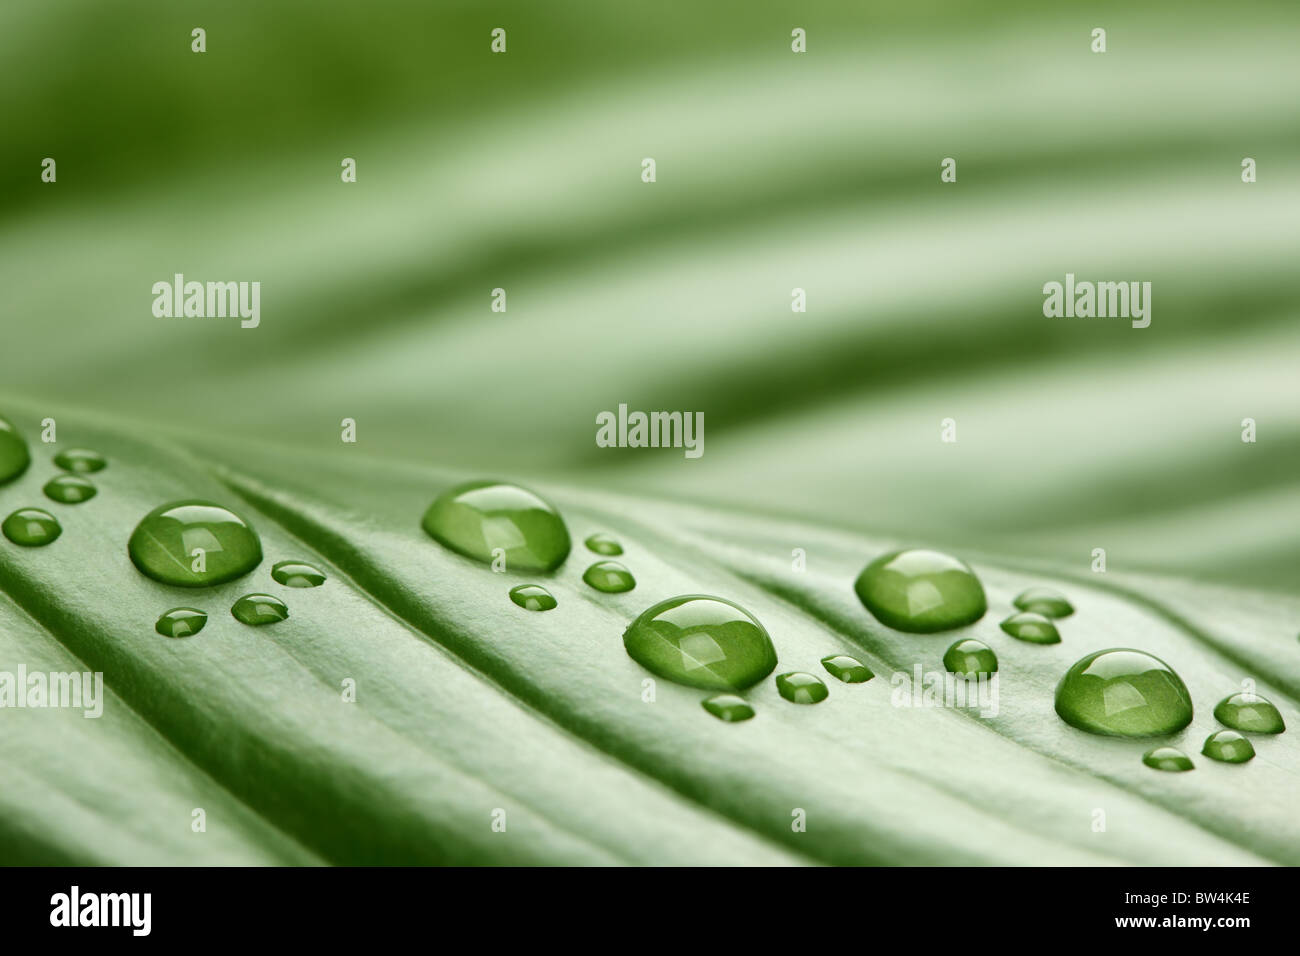 Footprint water drops on leaf - Stock Image